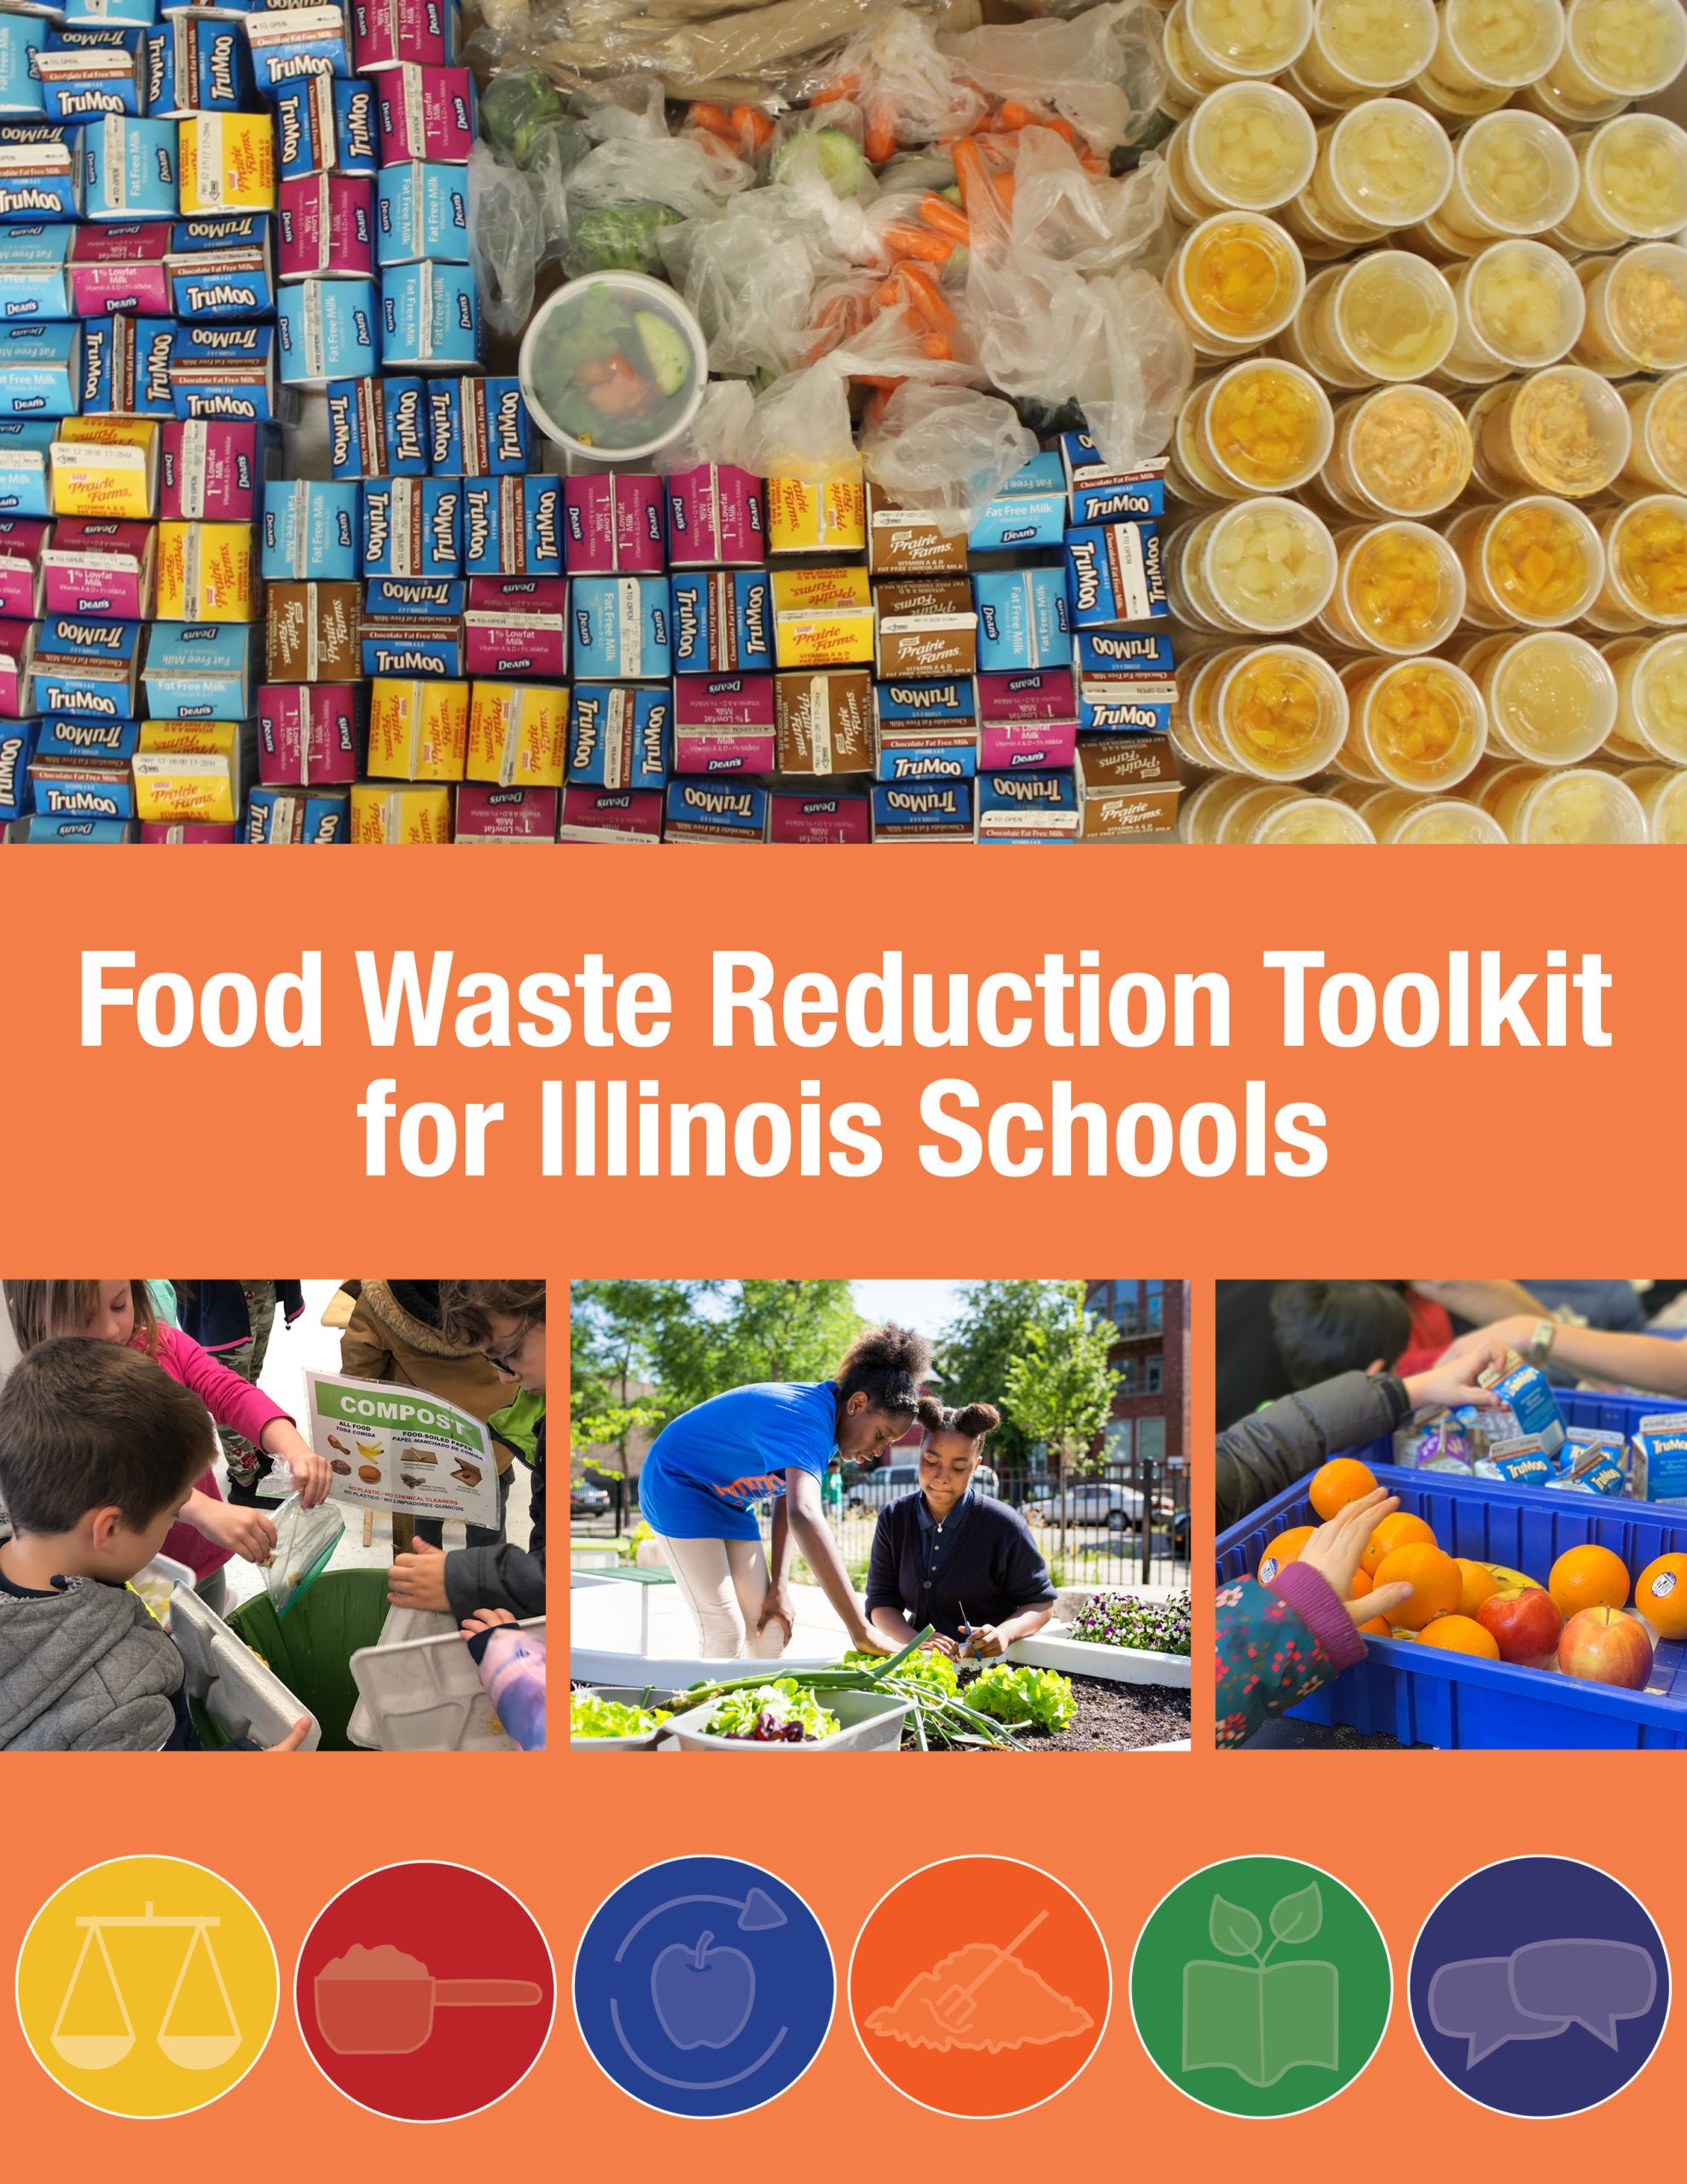 Food Waste Reduction Toolkit.cvr scaled